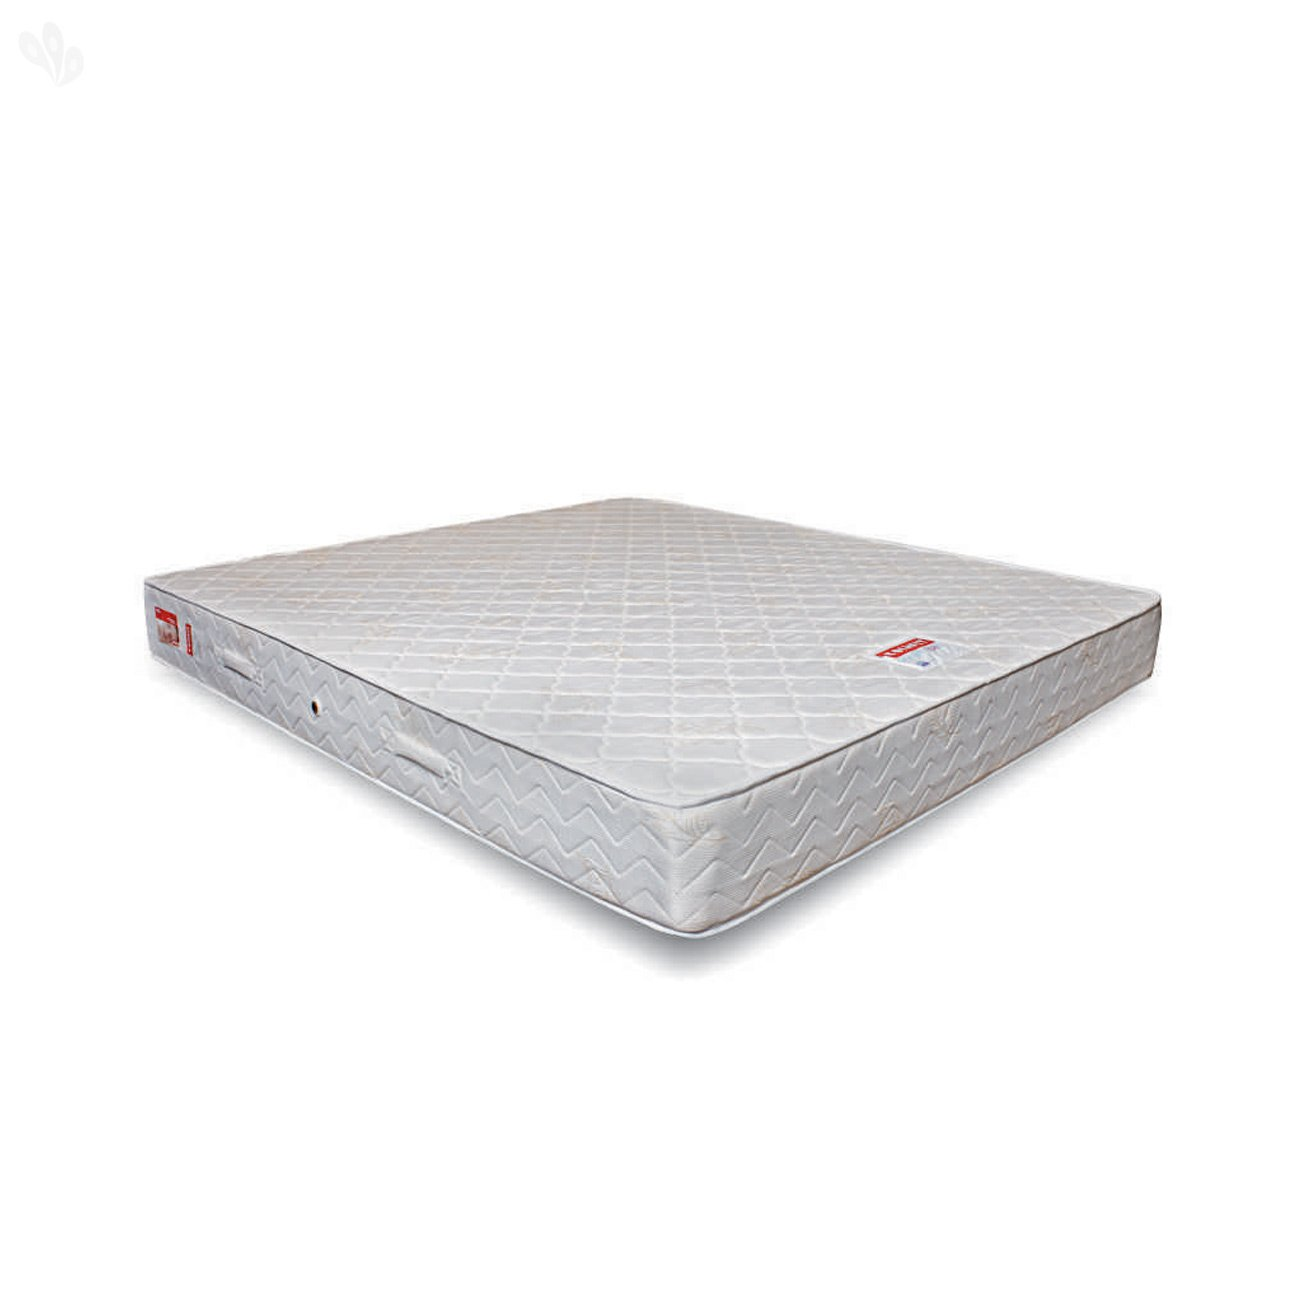 Price Drop Amazon Coirfit Health Spa 6 Inch King Size Memory Foam Mattress Off White 78x72x6